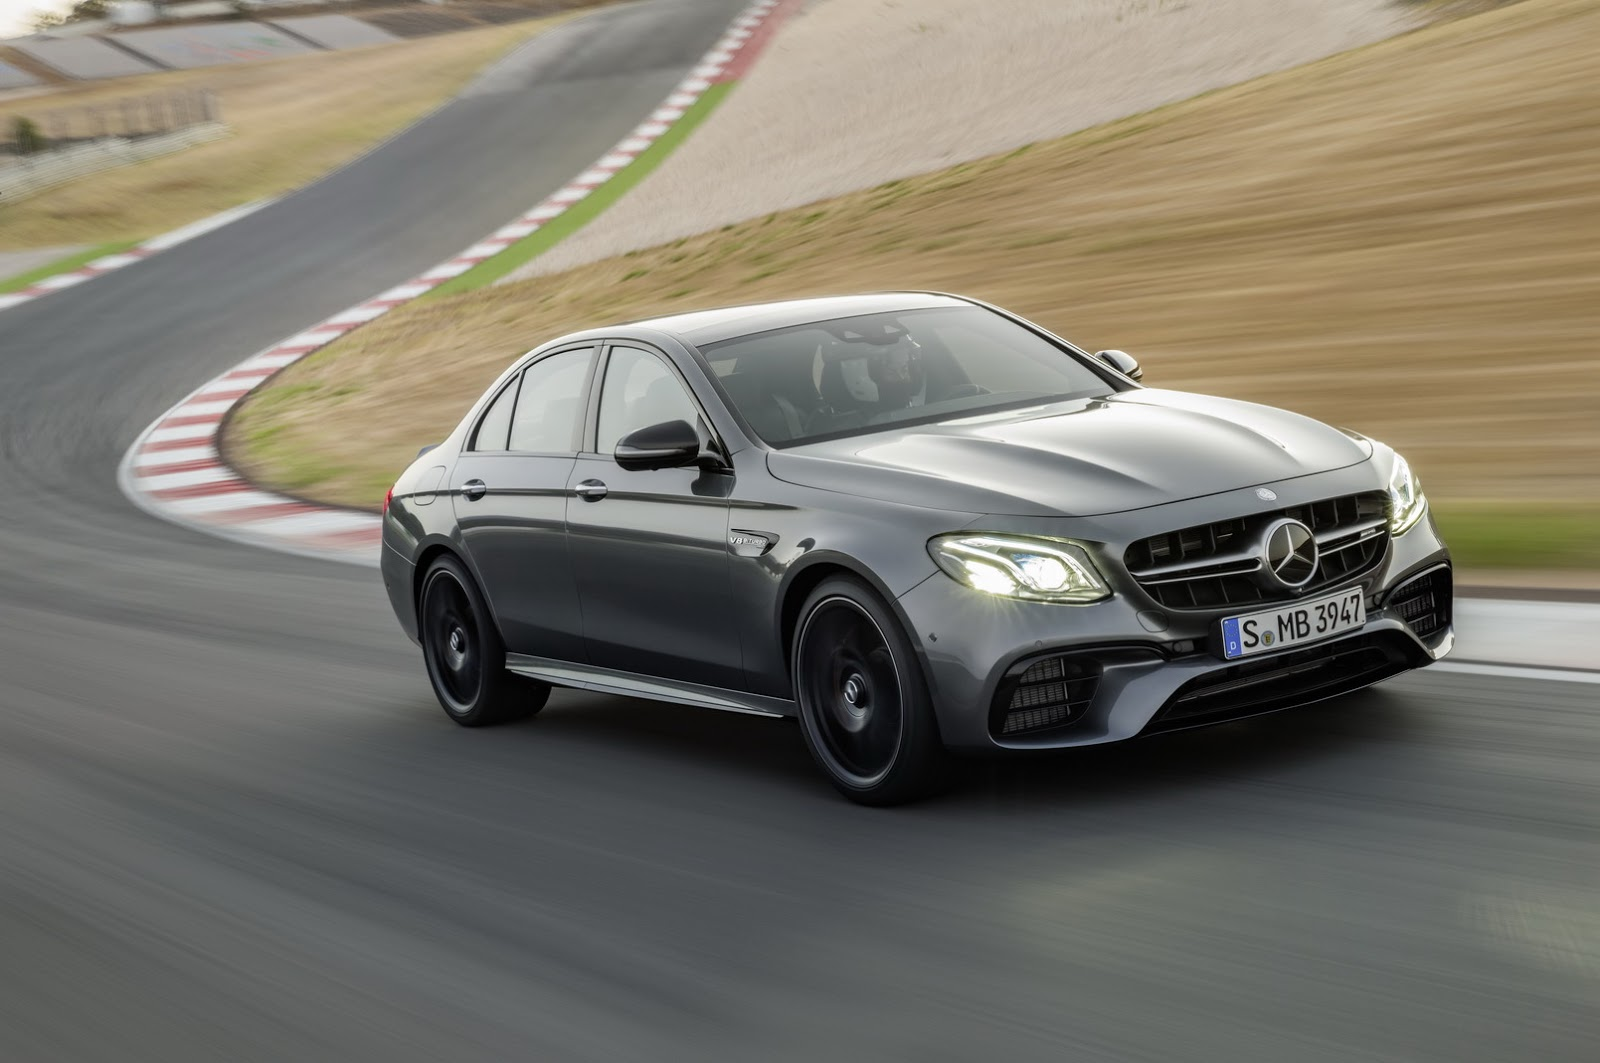 2018 mercedes amg e63 e63 s get up to 603hp hit 62mph 100km h as low as 3 4 sec